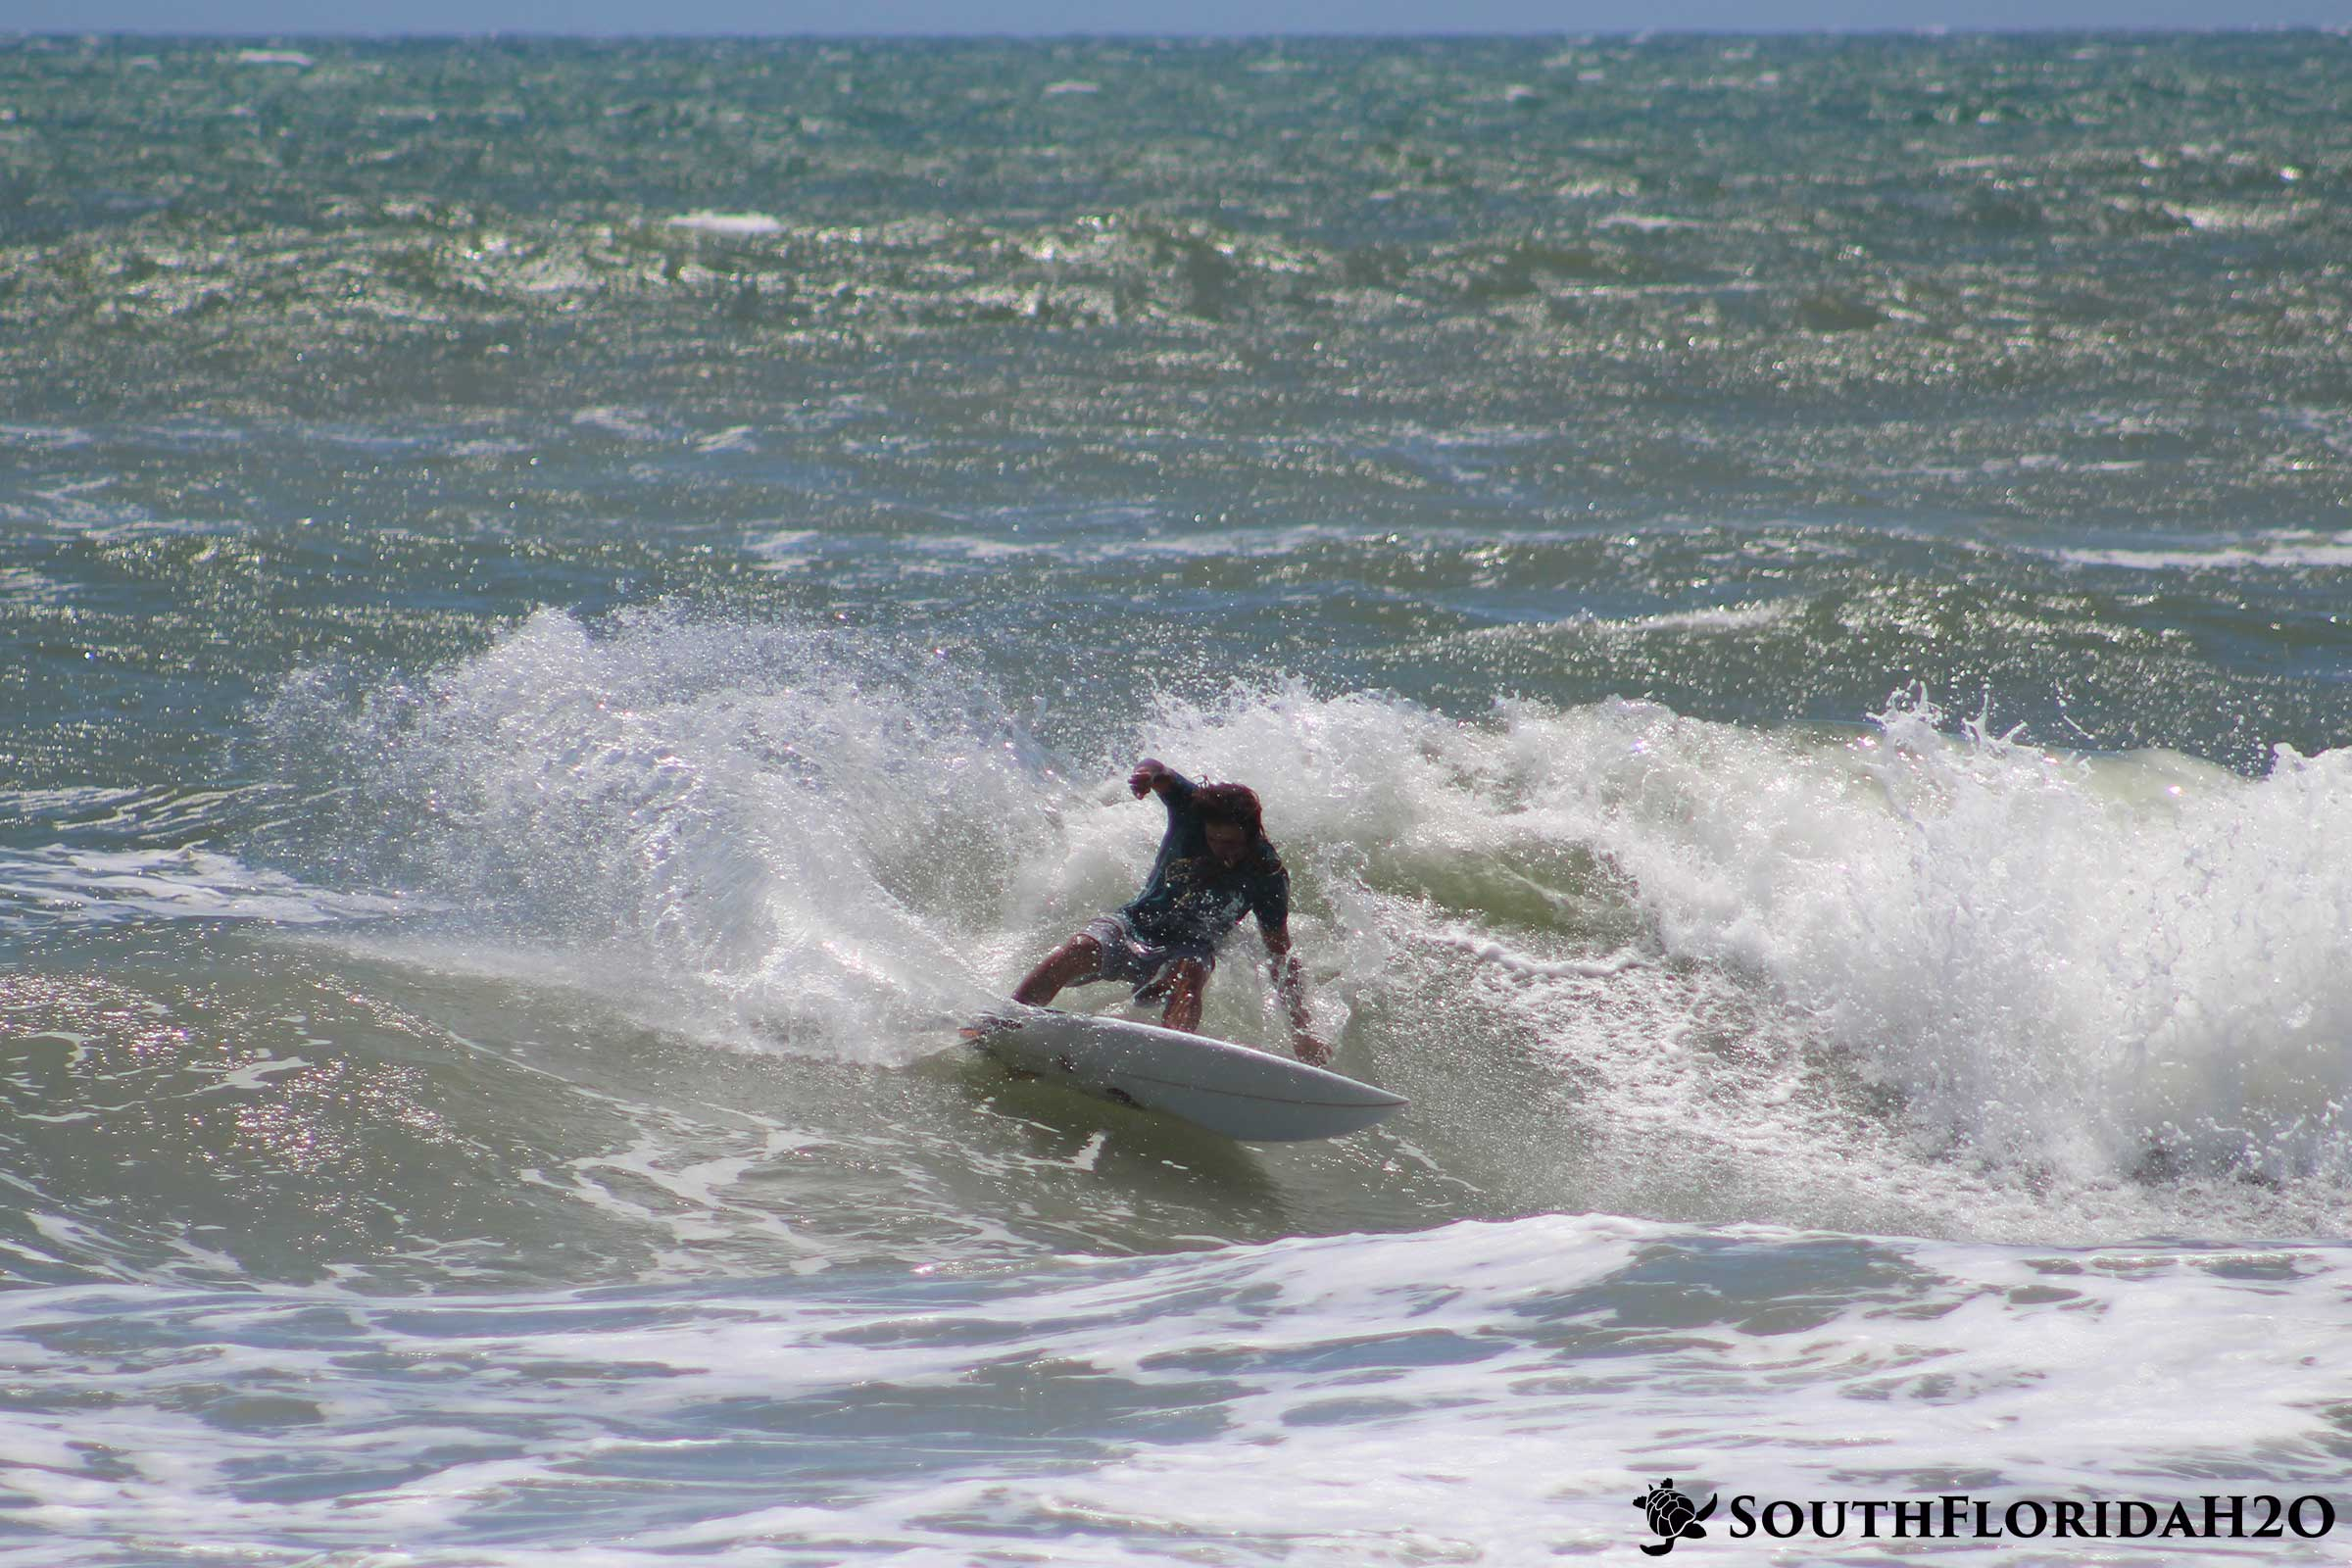 Juno Beach Access 29 Surfers June 21, 2016 - 03